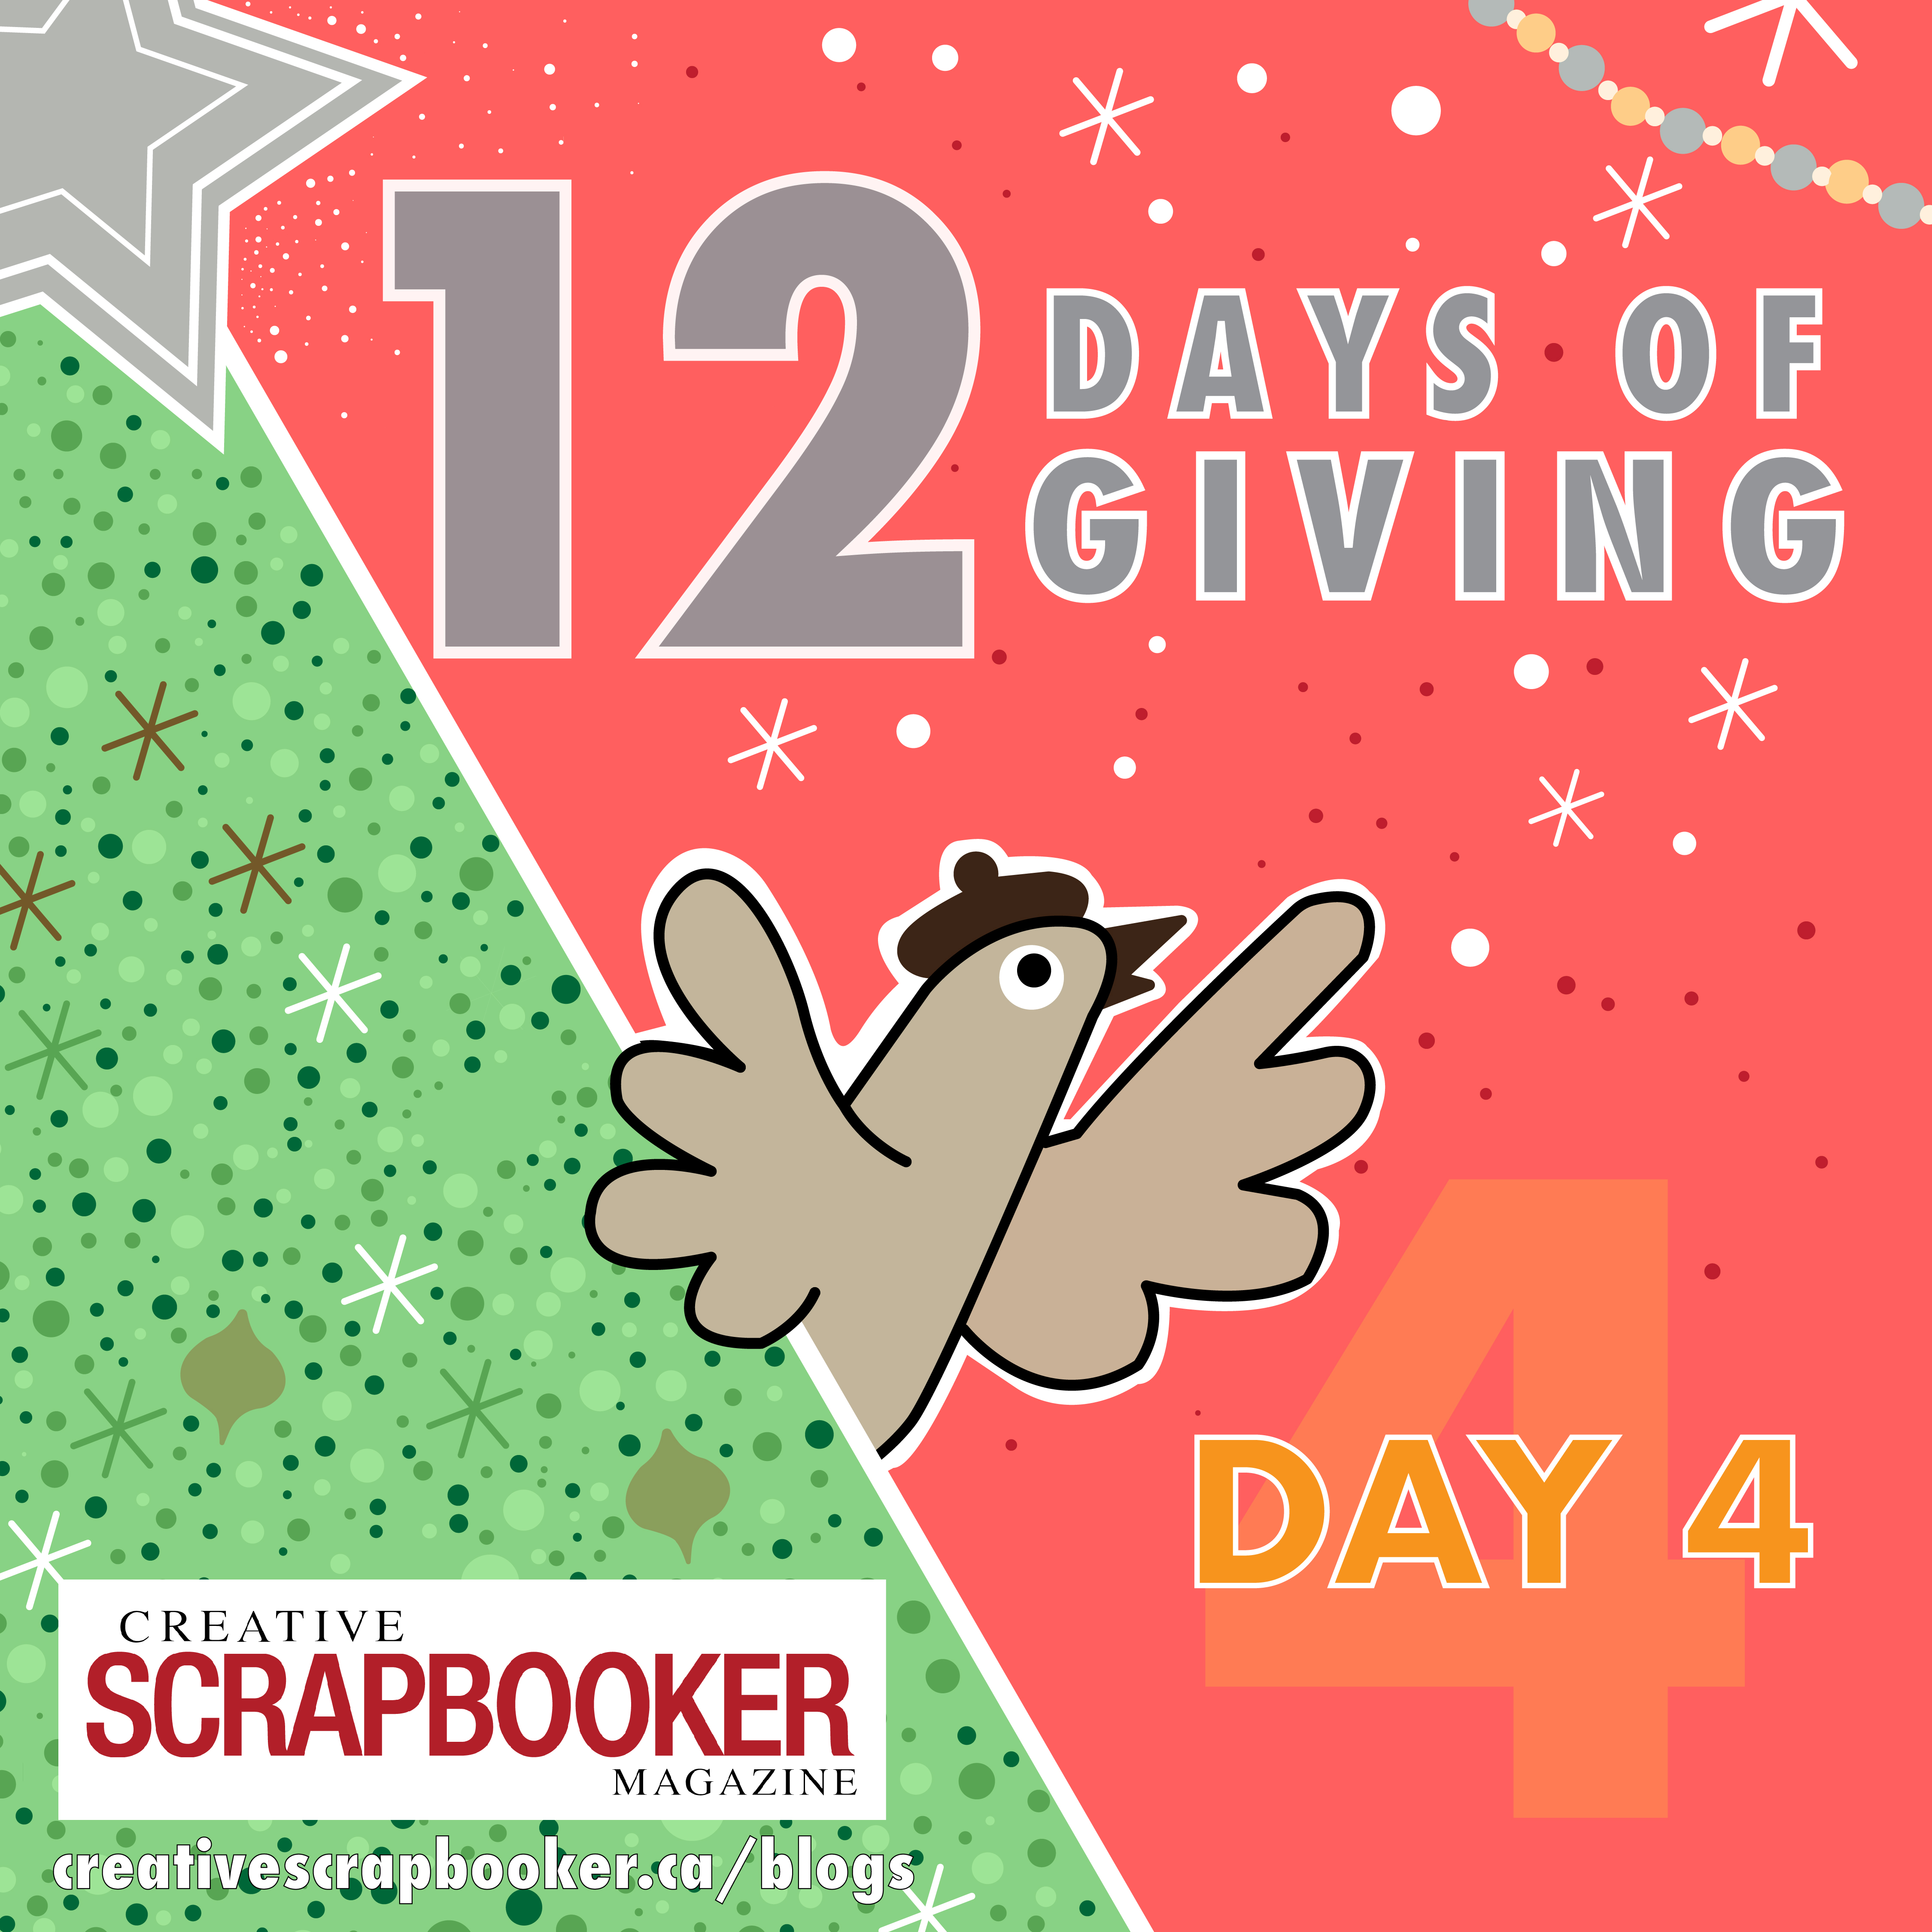 Day #4 12 Days of Giving with Creative Scrapbooker Magazine